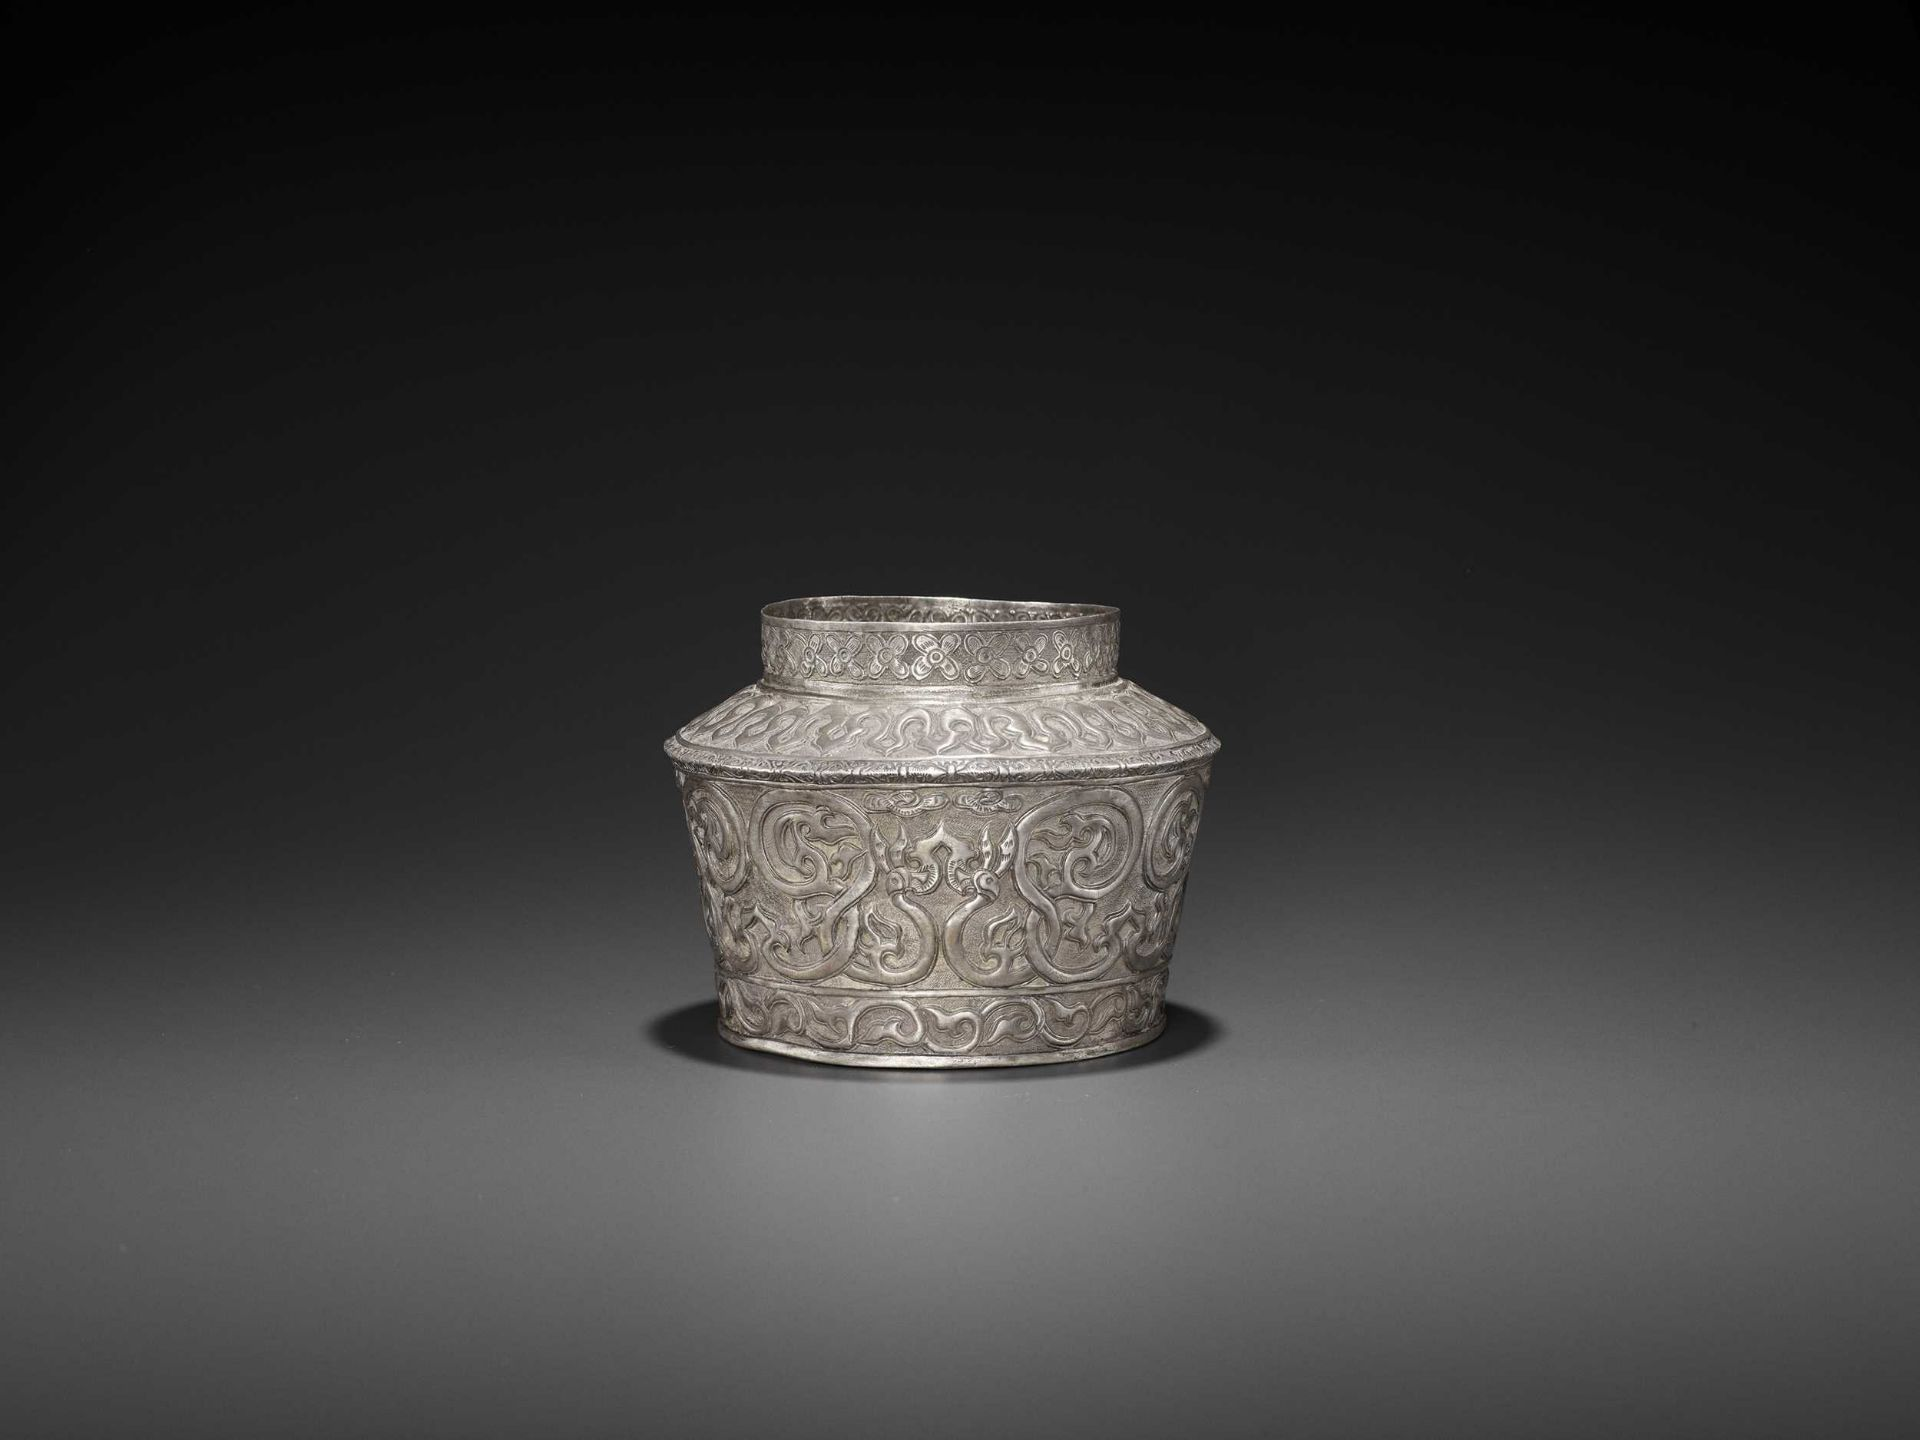 AN EXTREMELY RARE AND FINE CHAM SILVER REPOUSSÉ BOWL WITH PHOENIXES - Bild 3 aus 7